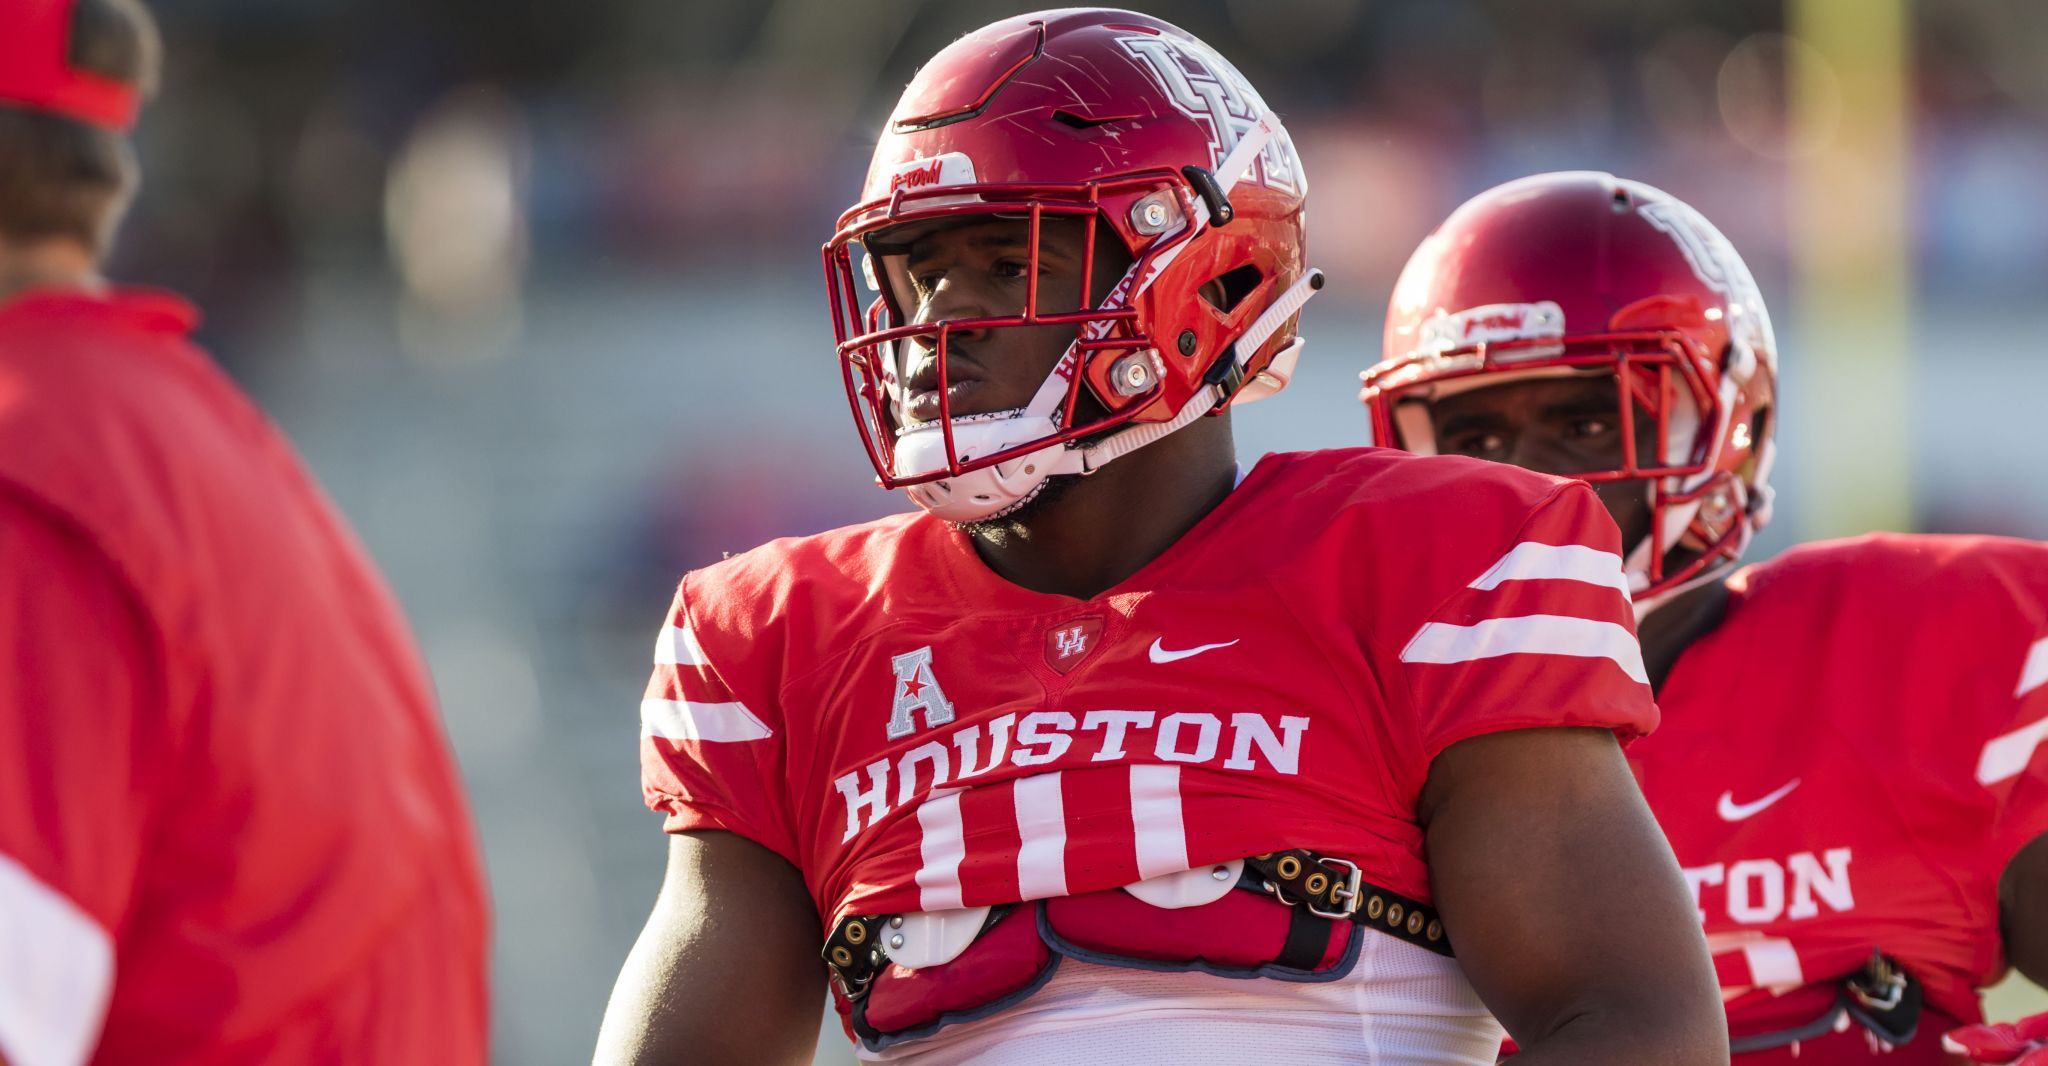 The marketing of Ed Oliver and the Heisman Trophy chase